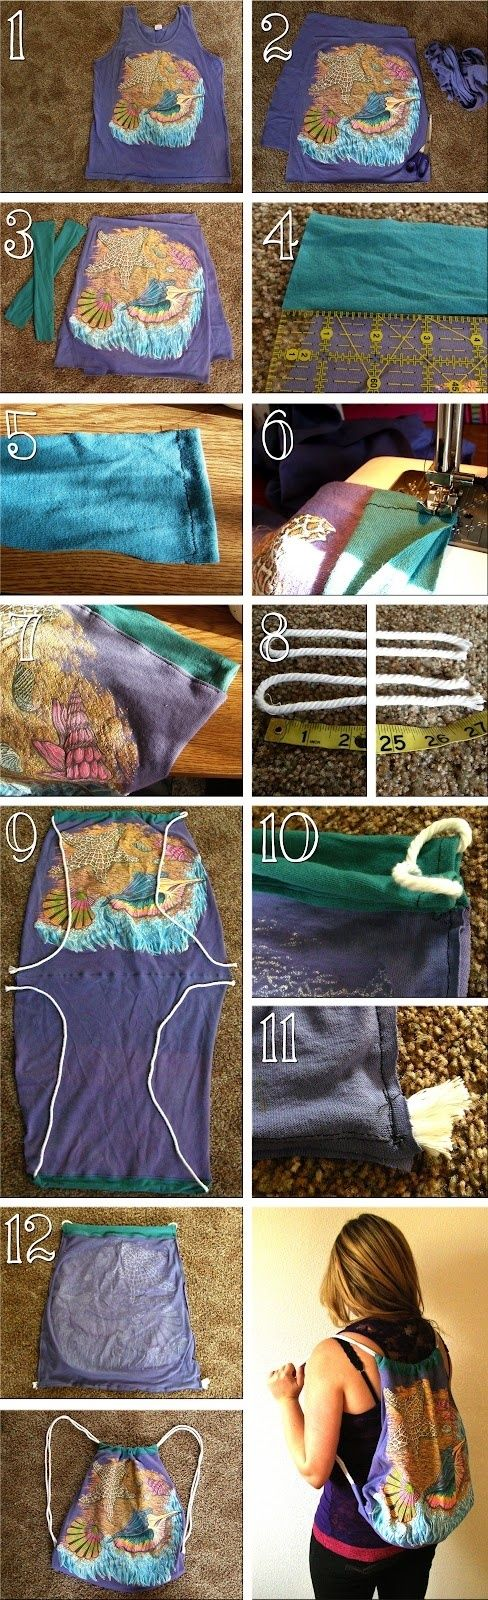 Coco 的美術館: DIY T- Shirt Redesign Ideas (part 5)--Scarf / Vest / bag / Headband